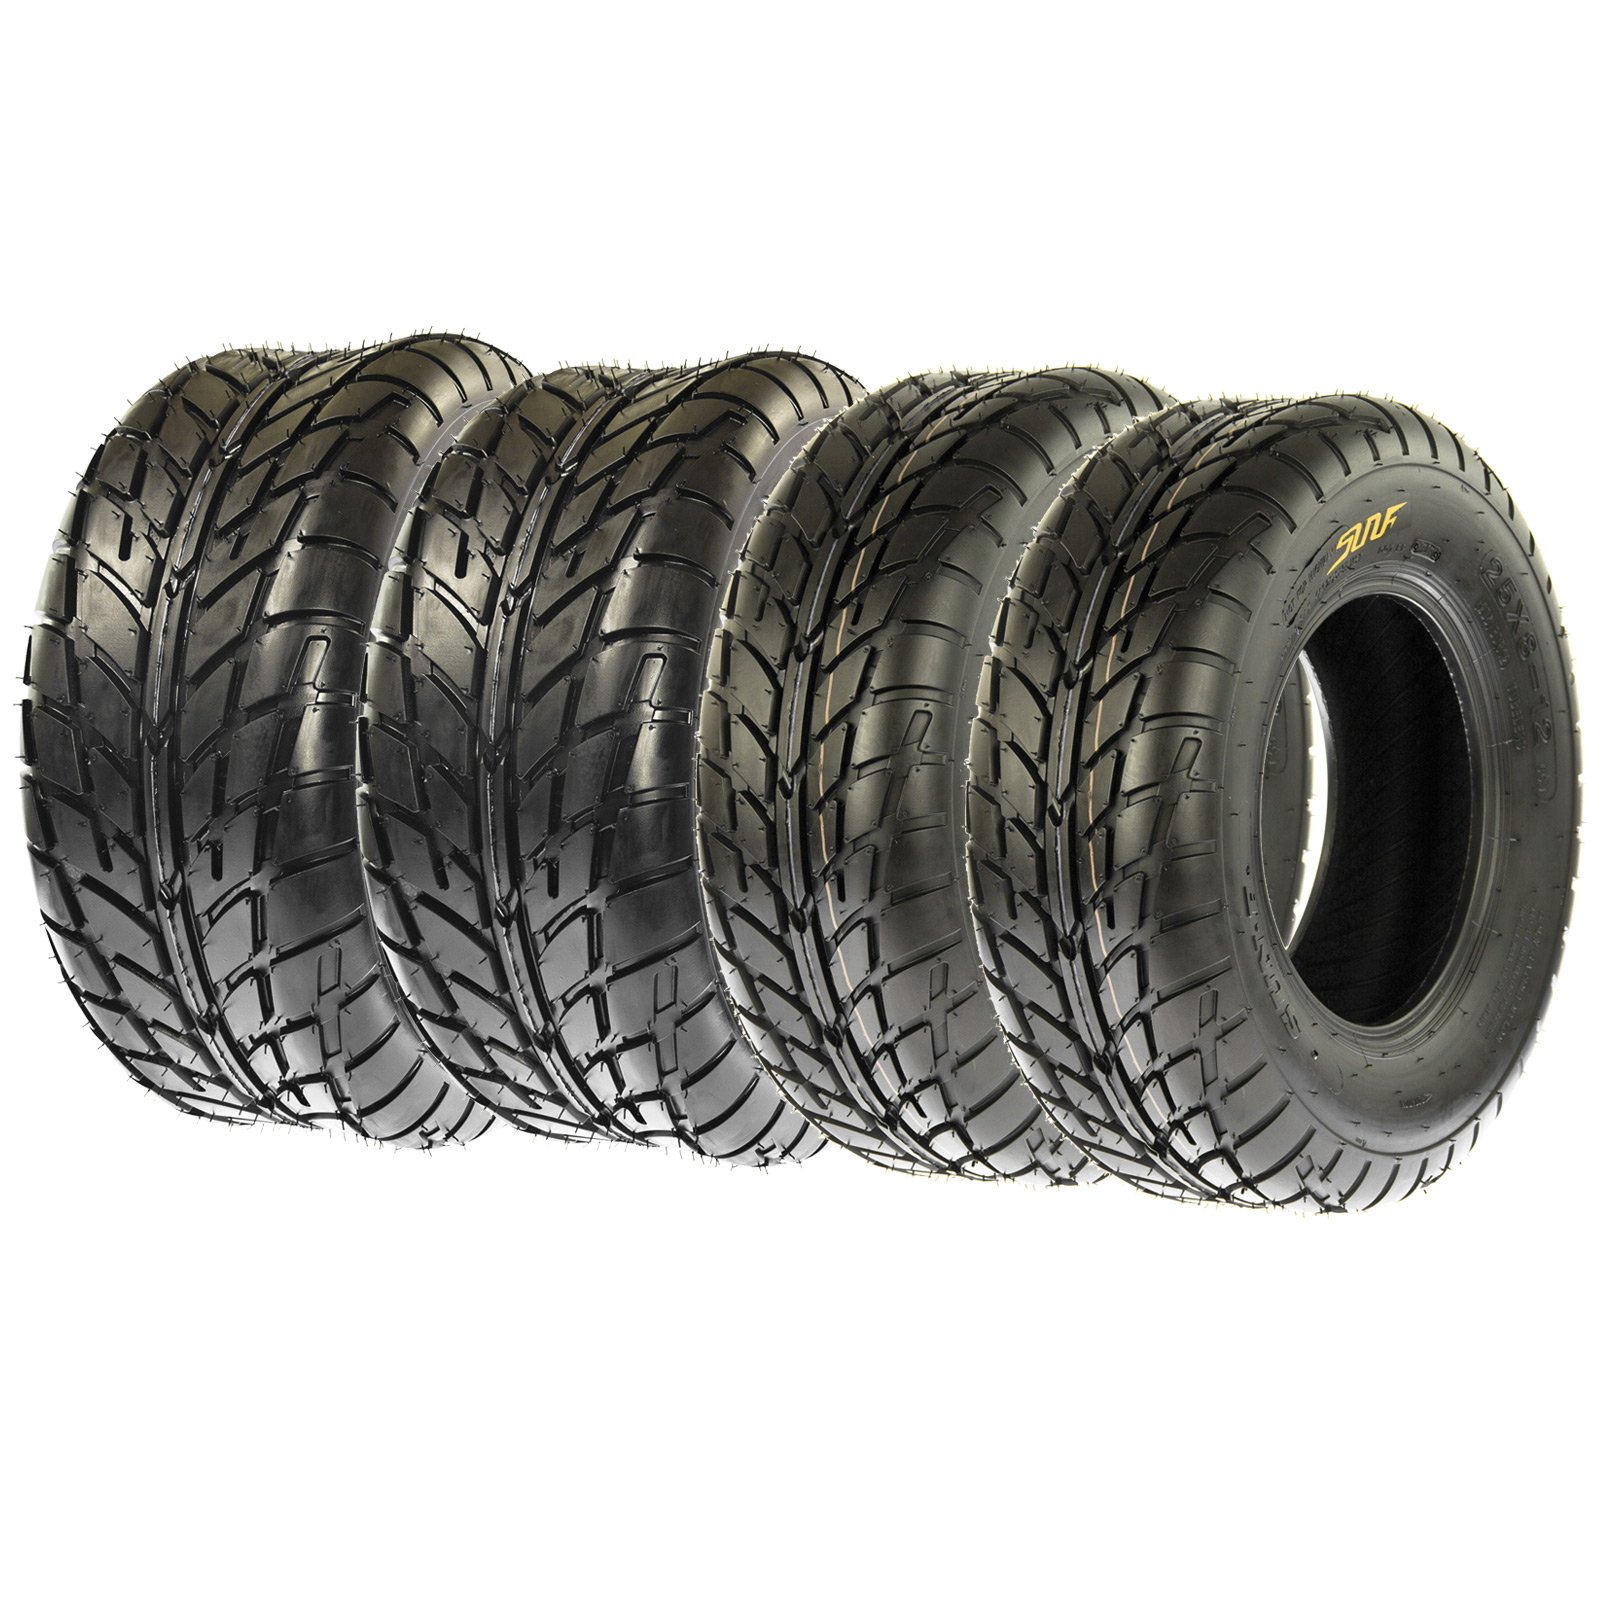 SunF A021 Road Go ATV Tires 21x7-10 & 22x10-8, 4 Ply Front&Rear